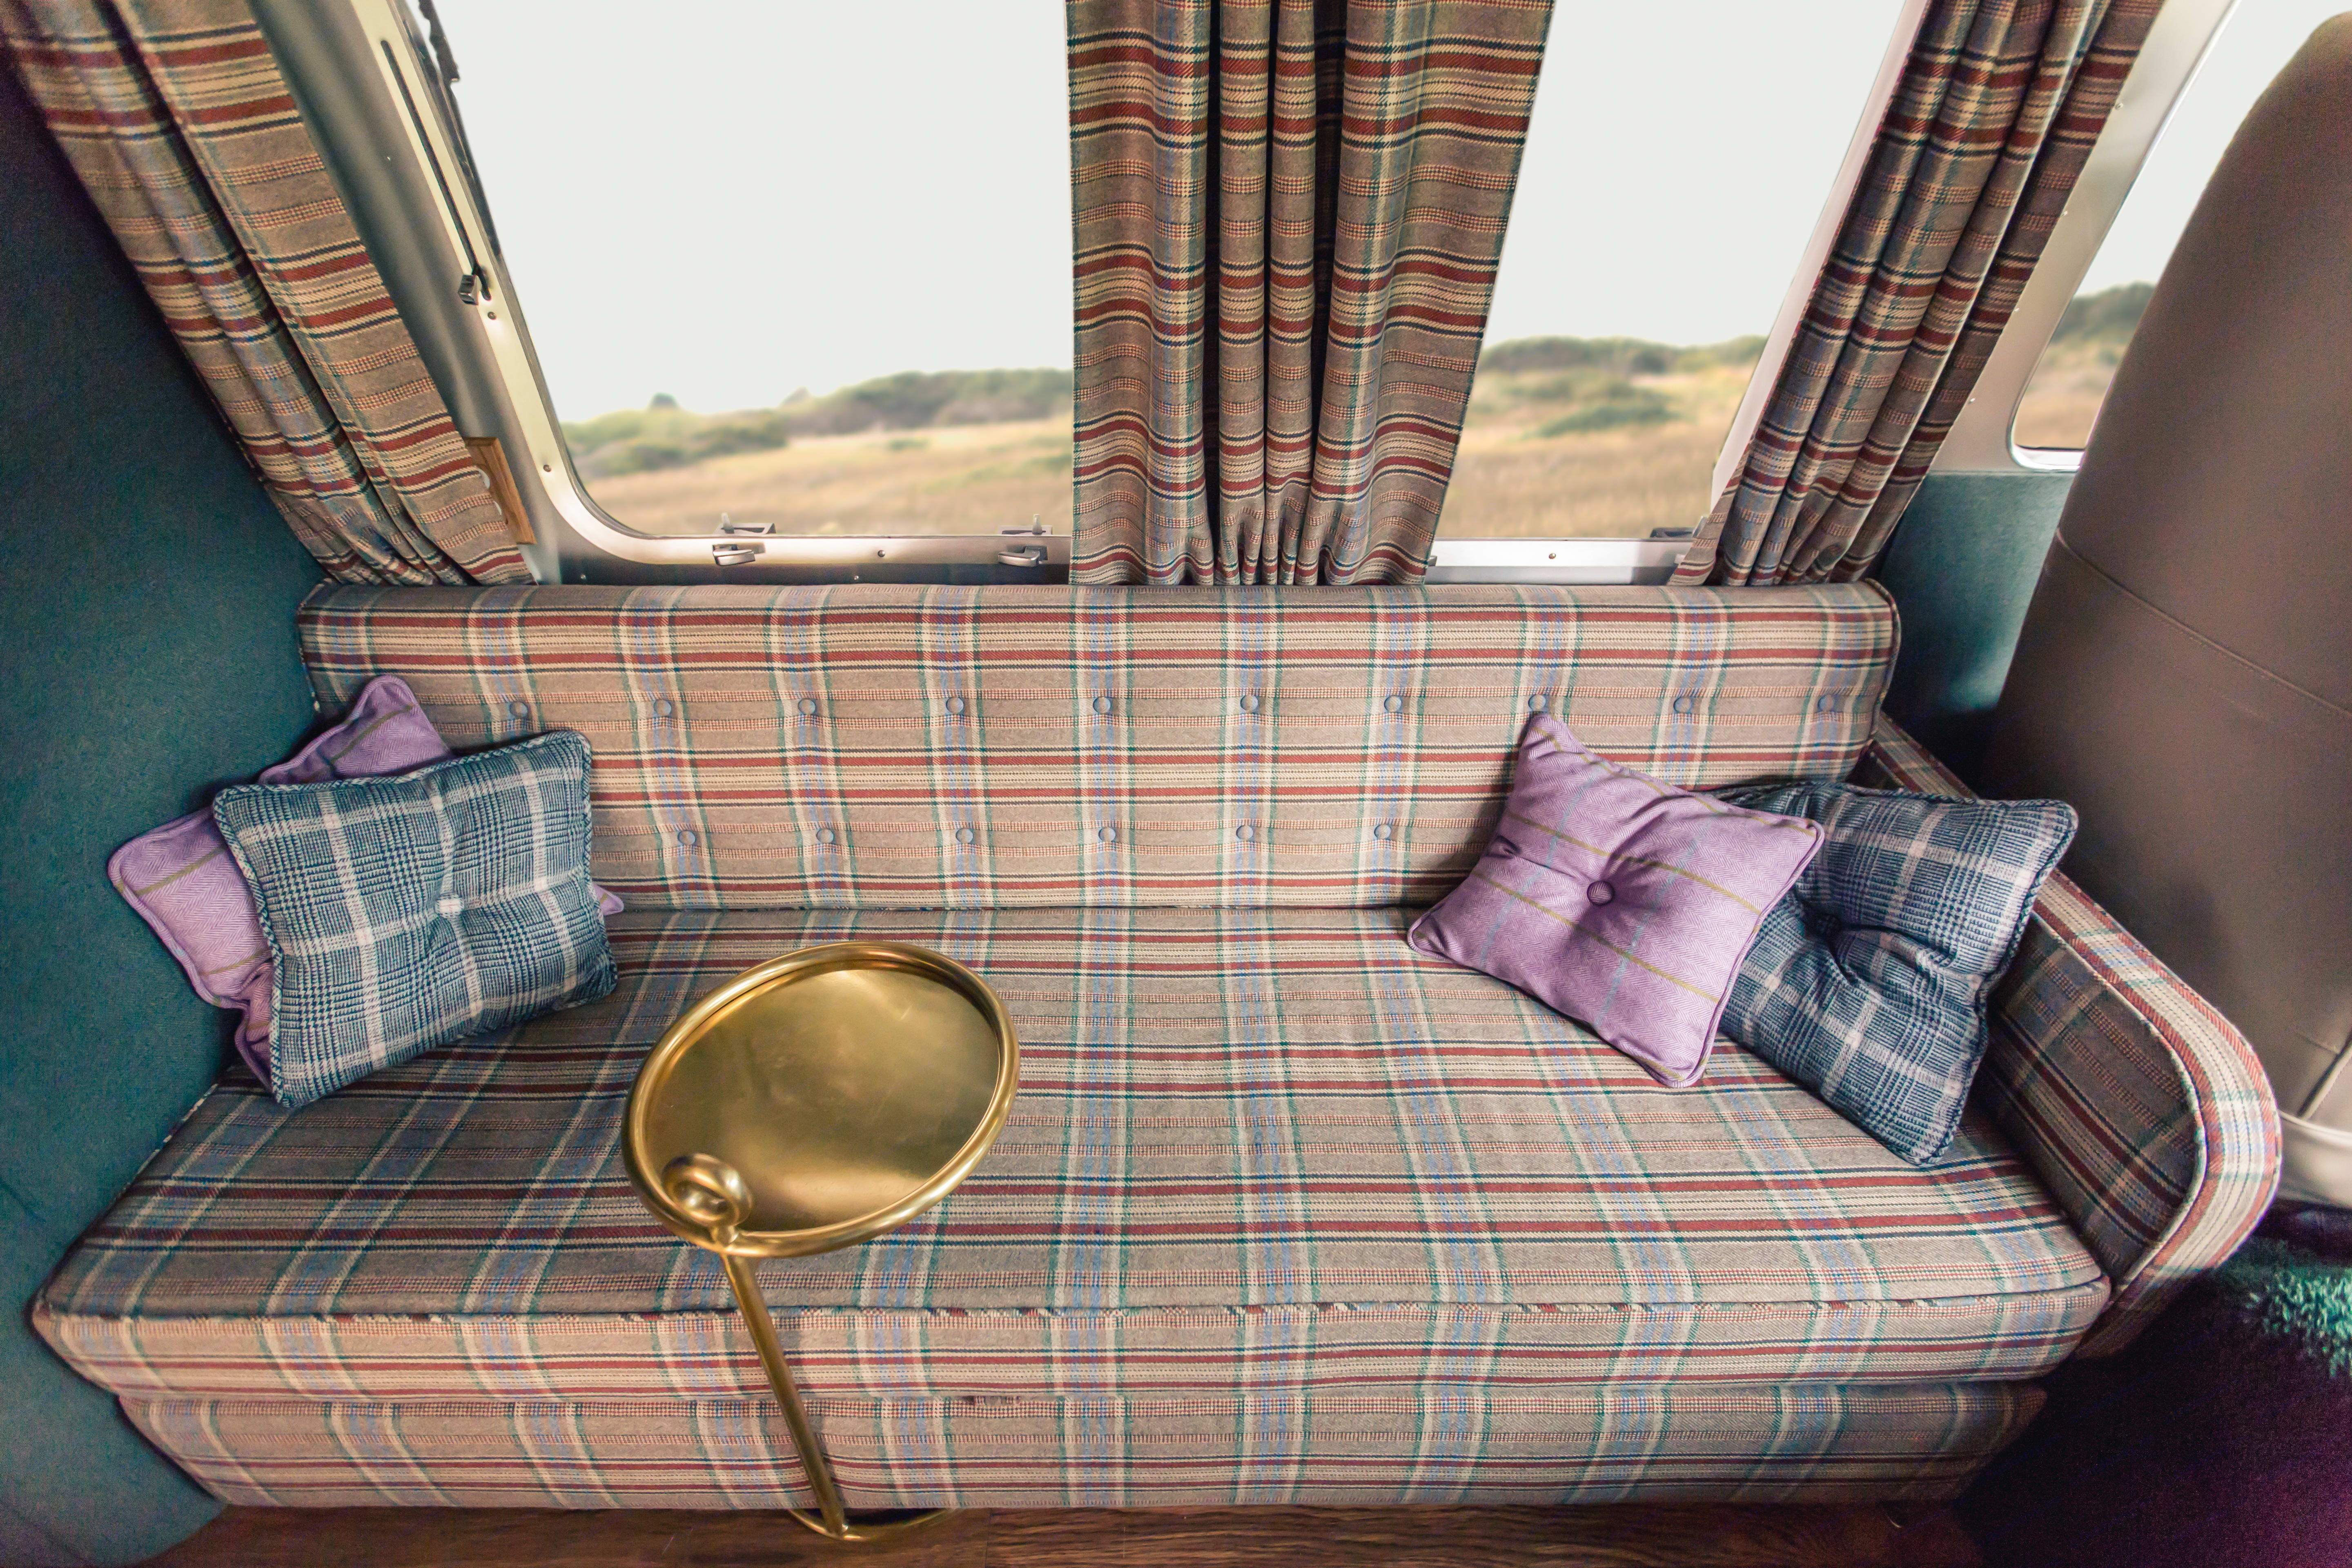 sofabed folded in living area. Airstream Excella 1981